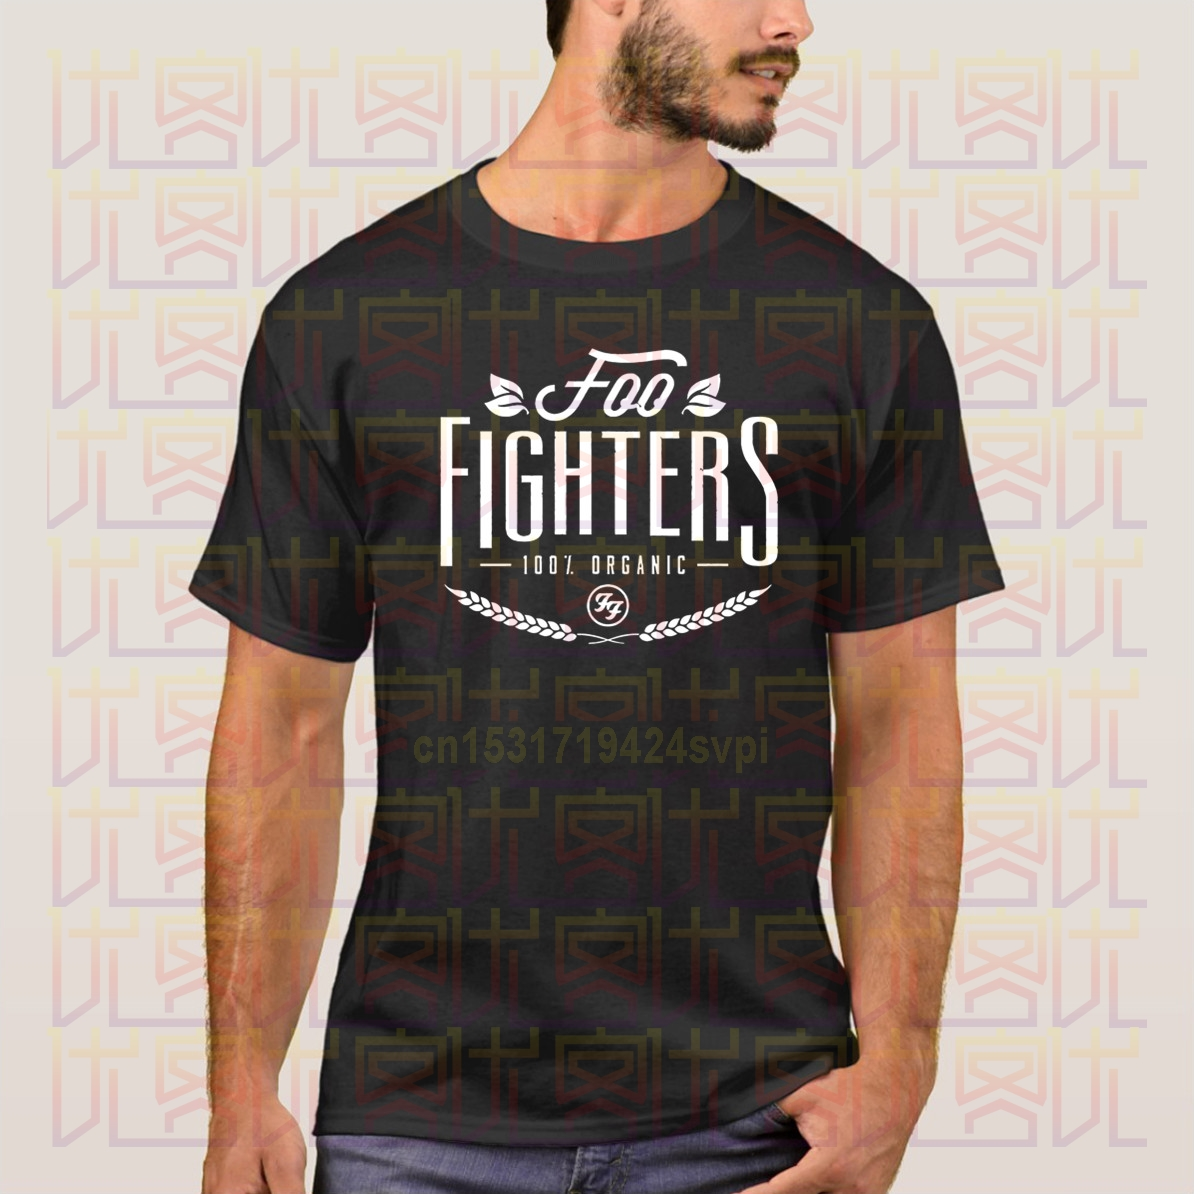 100% cotton T Shirt Hot Topic Sleeve women'S Crew Neck Foo Fighters Organic Dave Grohl Rock Short Compression T Shirts image